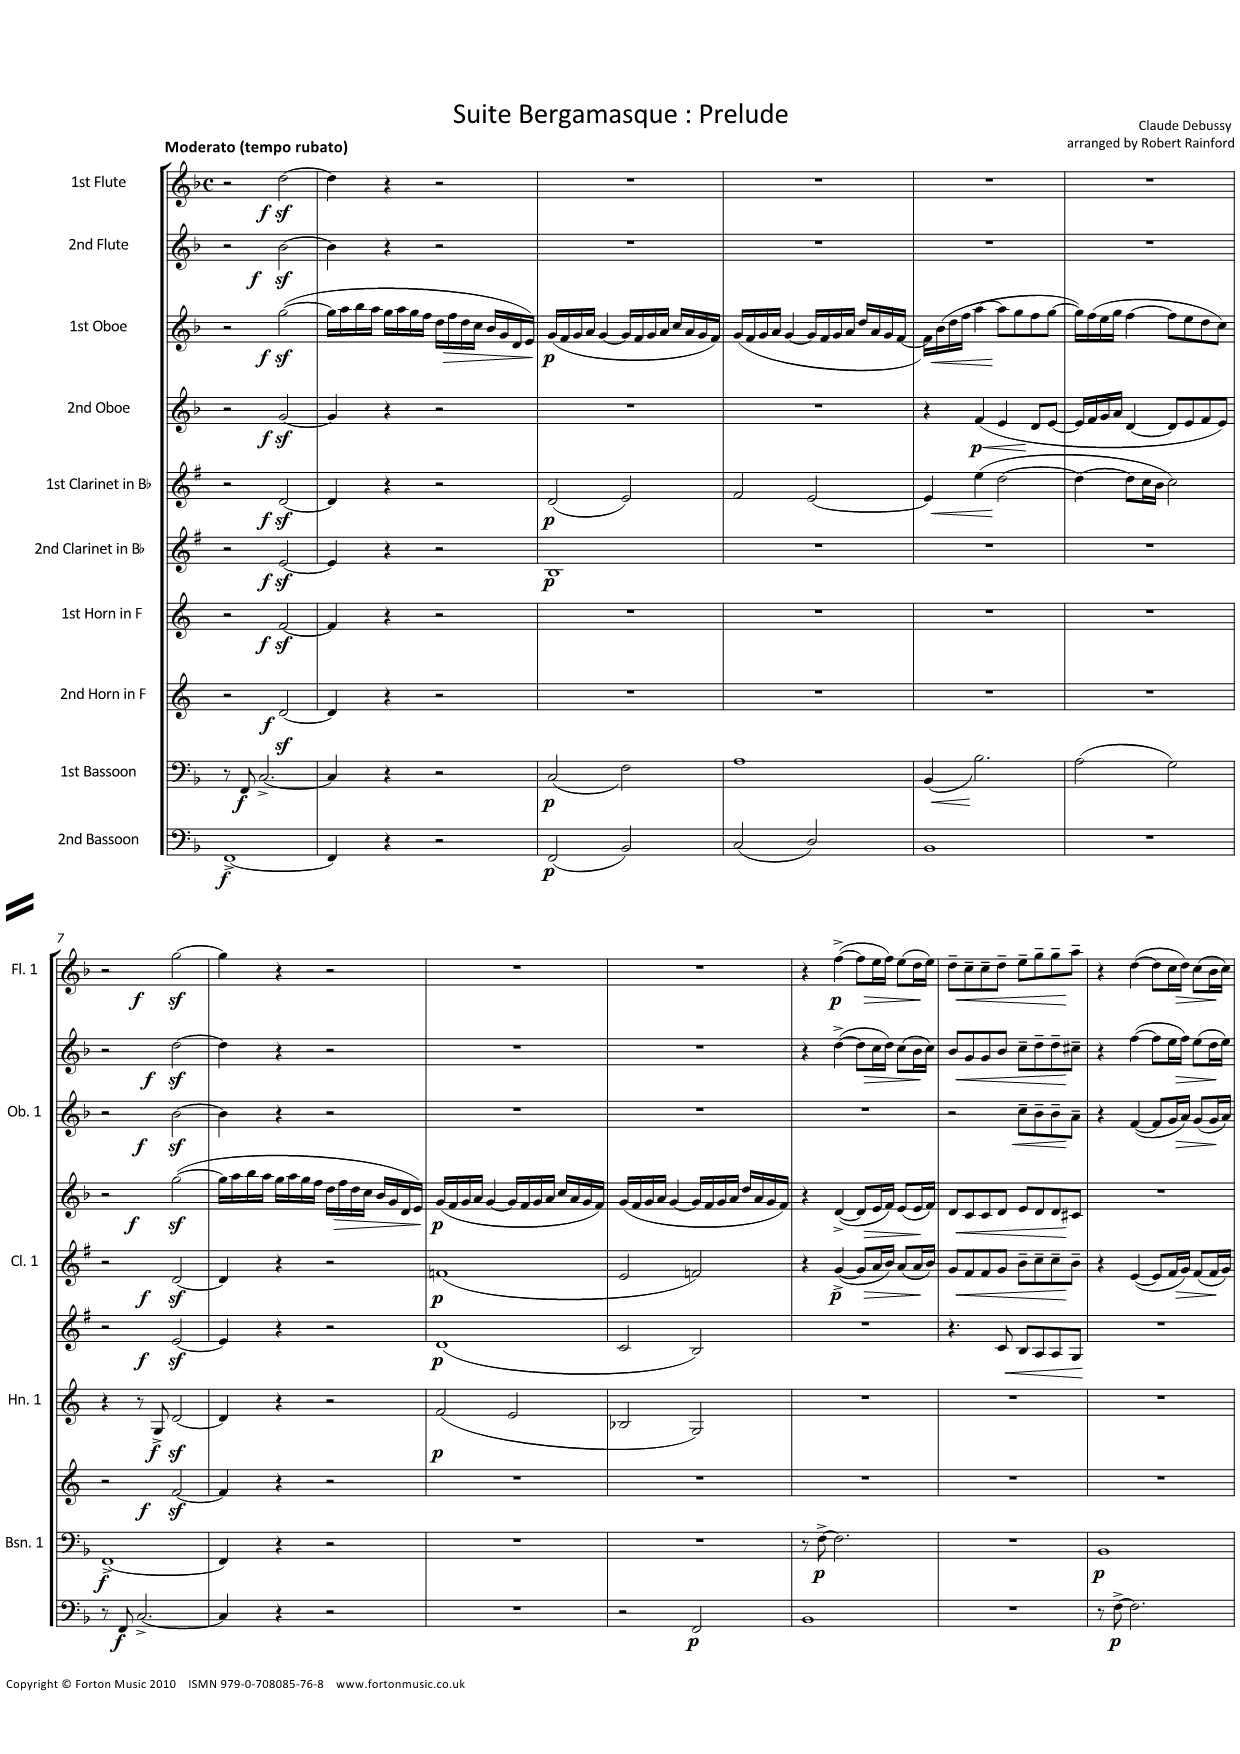 Prelude from the Suite Bergamasque